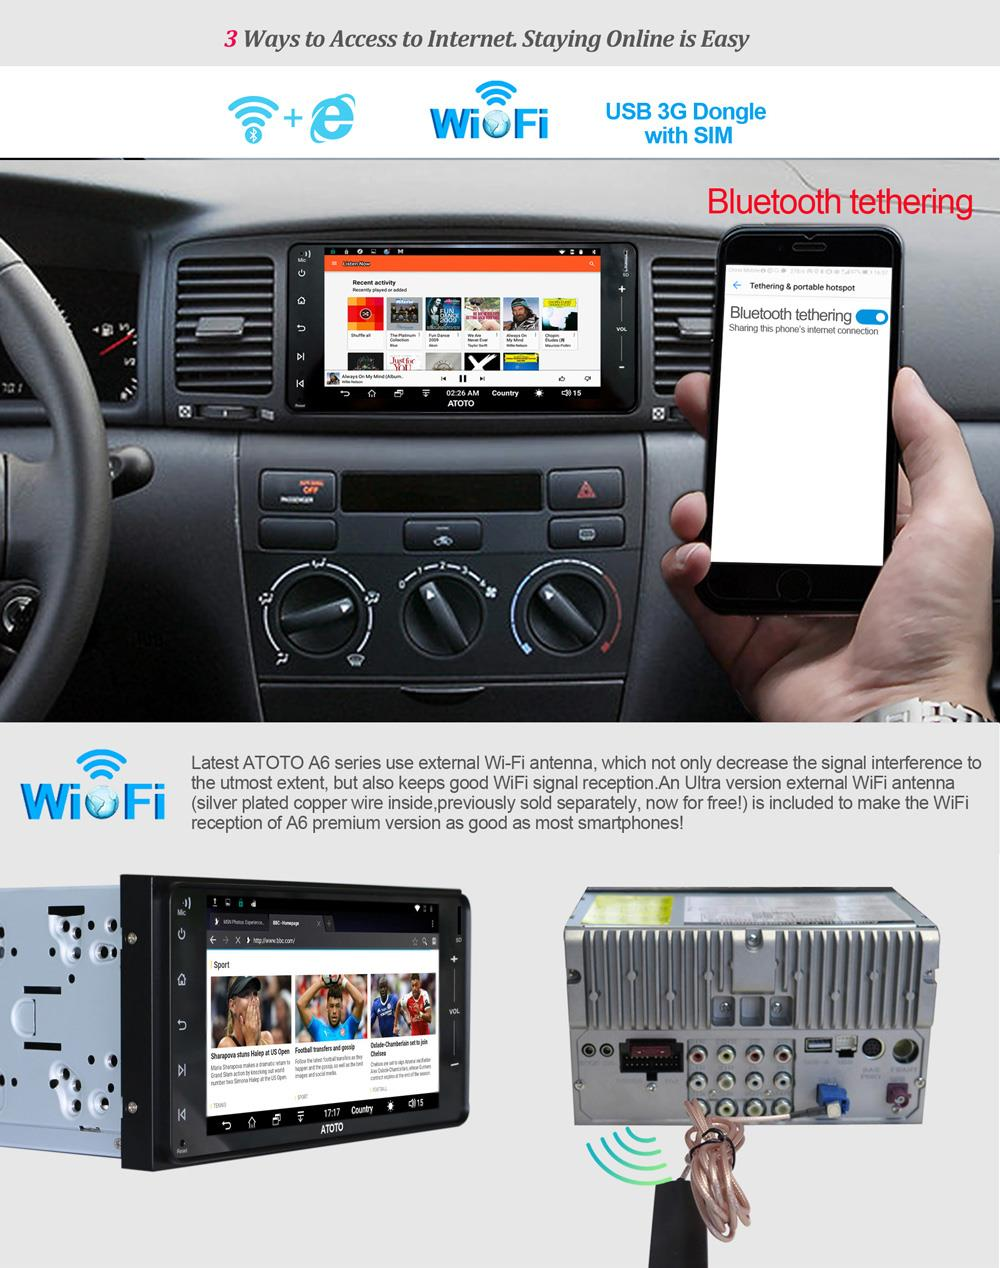 for Select Toyota//Subaru ATOTO A6 Pro Android Car Navigation Stereo -2X Bluetooth w//aptX /& Quick Charge Pro A6YTY721PR Indash Entertainment Multimedia Radio,WiFi//BT Tethering Internet New